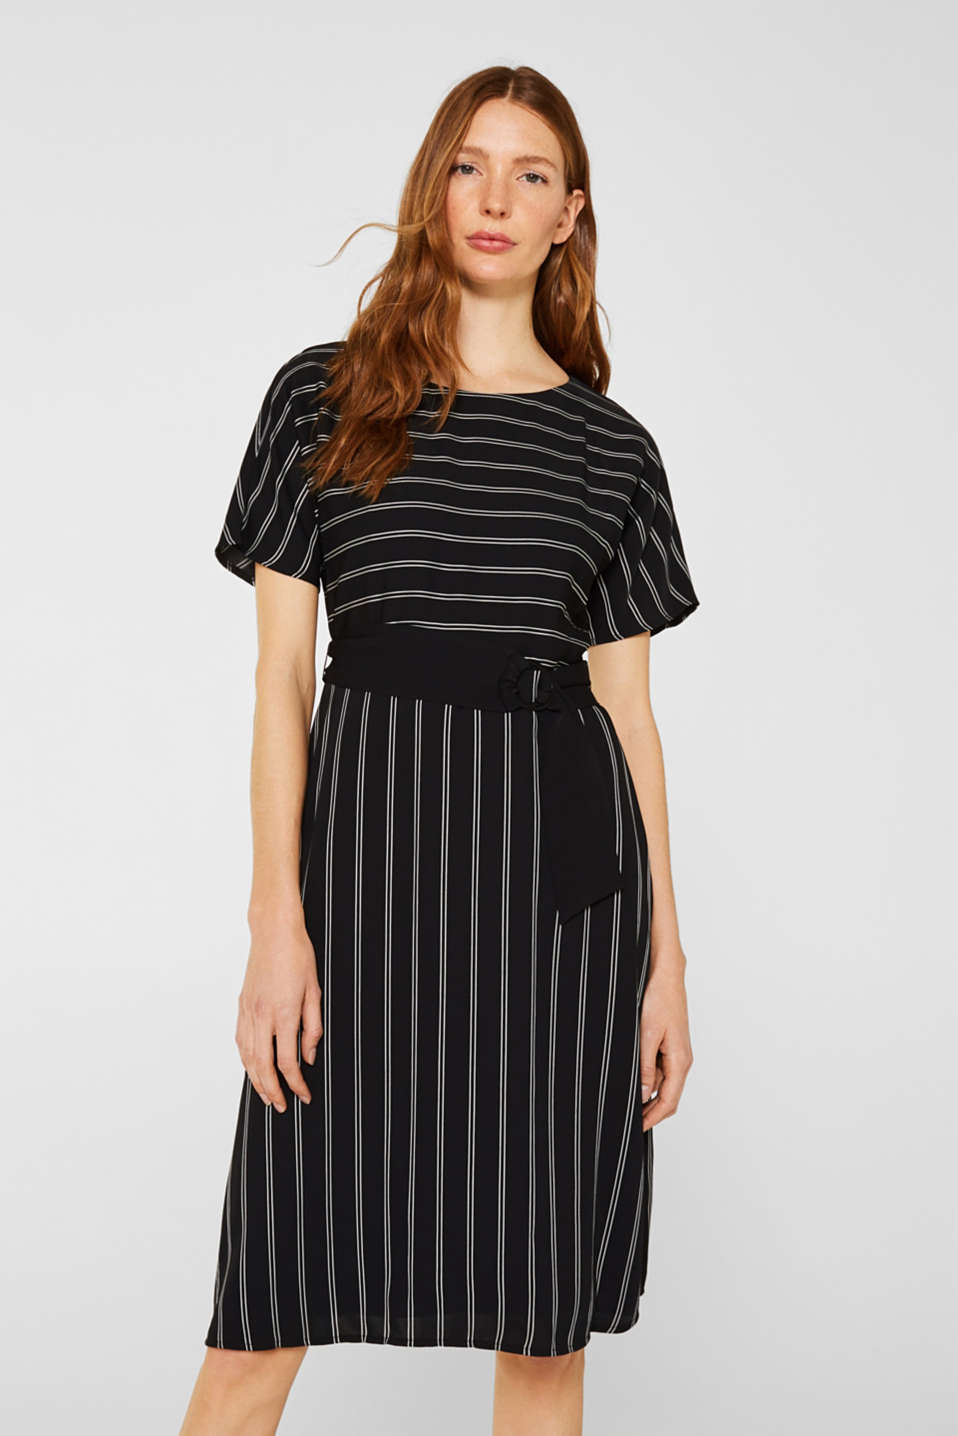 Esprit - Striped dress with raglan sleeves and a belt